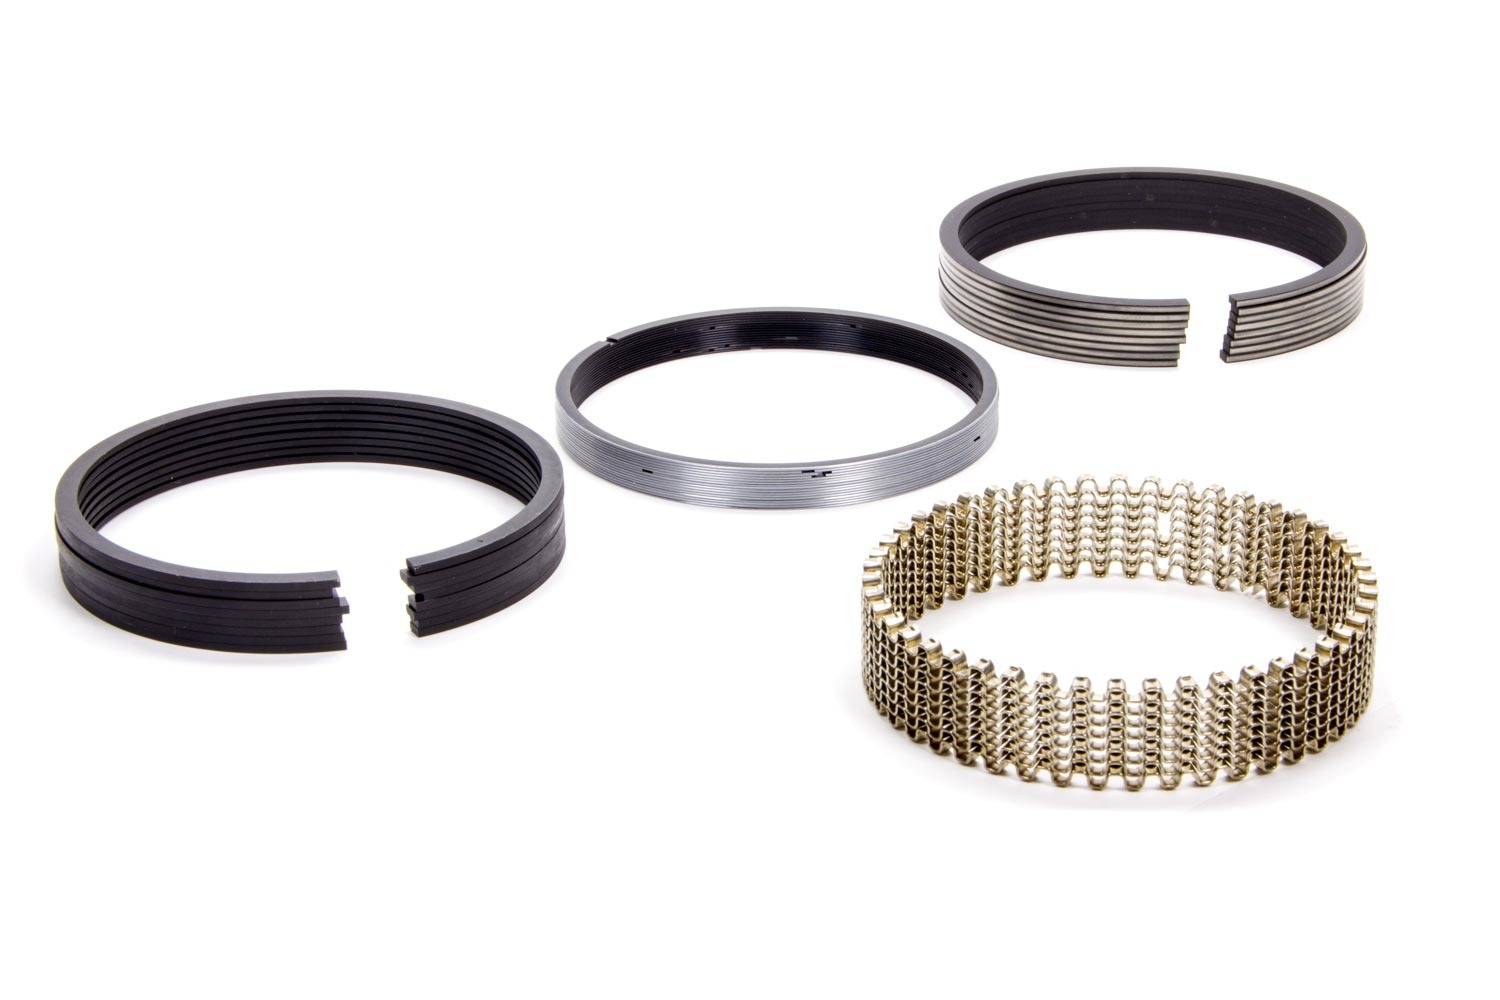 Hastings 2M139040 Piston Rings, 4.040 in Bore, 5/64 x 5/64 x 3/16 in Thick, Standard Tension, Moly, 8 Cylinder, Kit